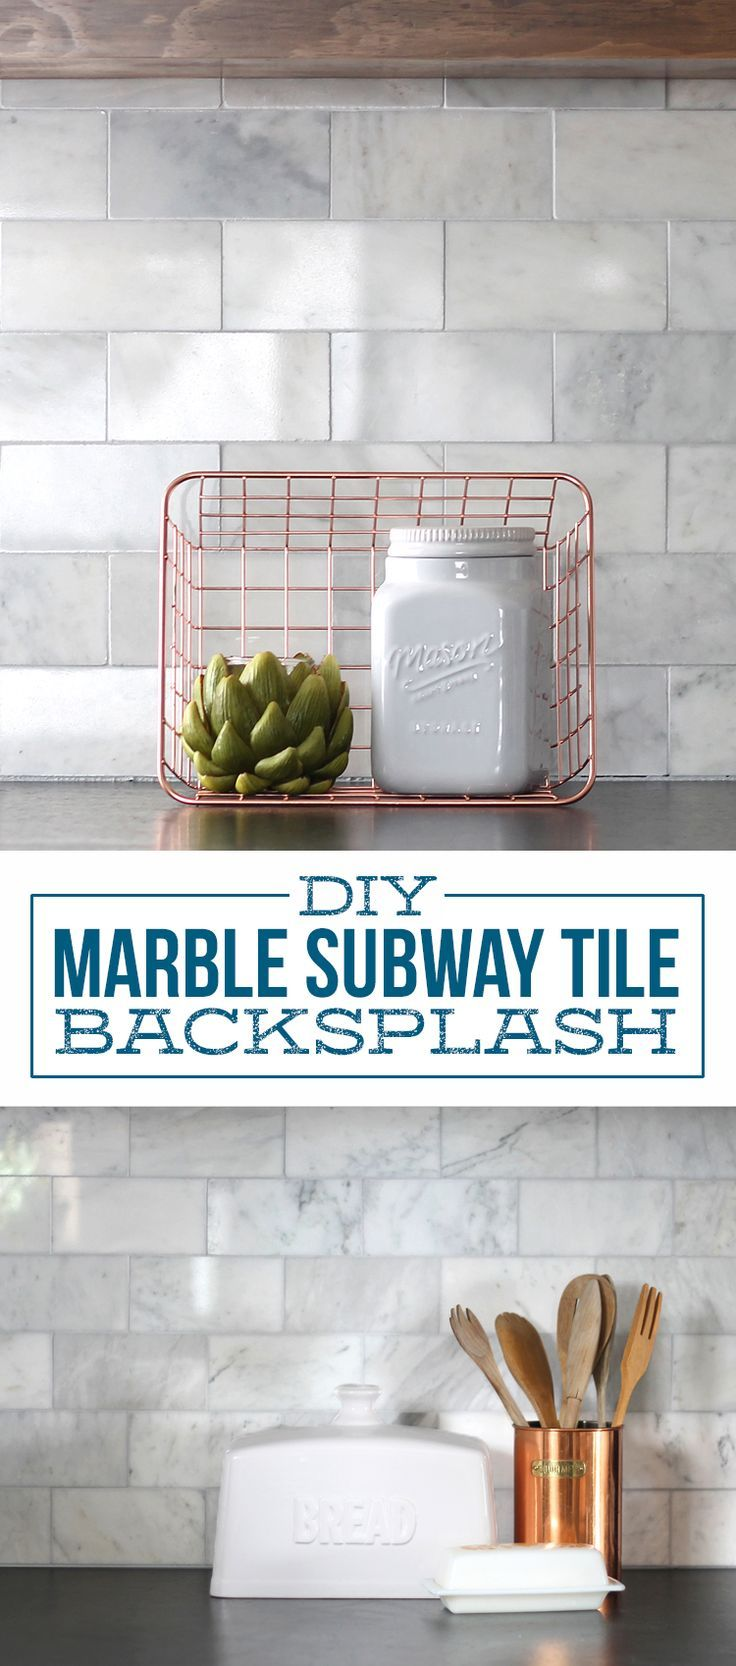 best 25 marble tile backsplash ideas that you will like on tips tricks and what not to do when you install your own kitchen backsplash